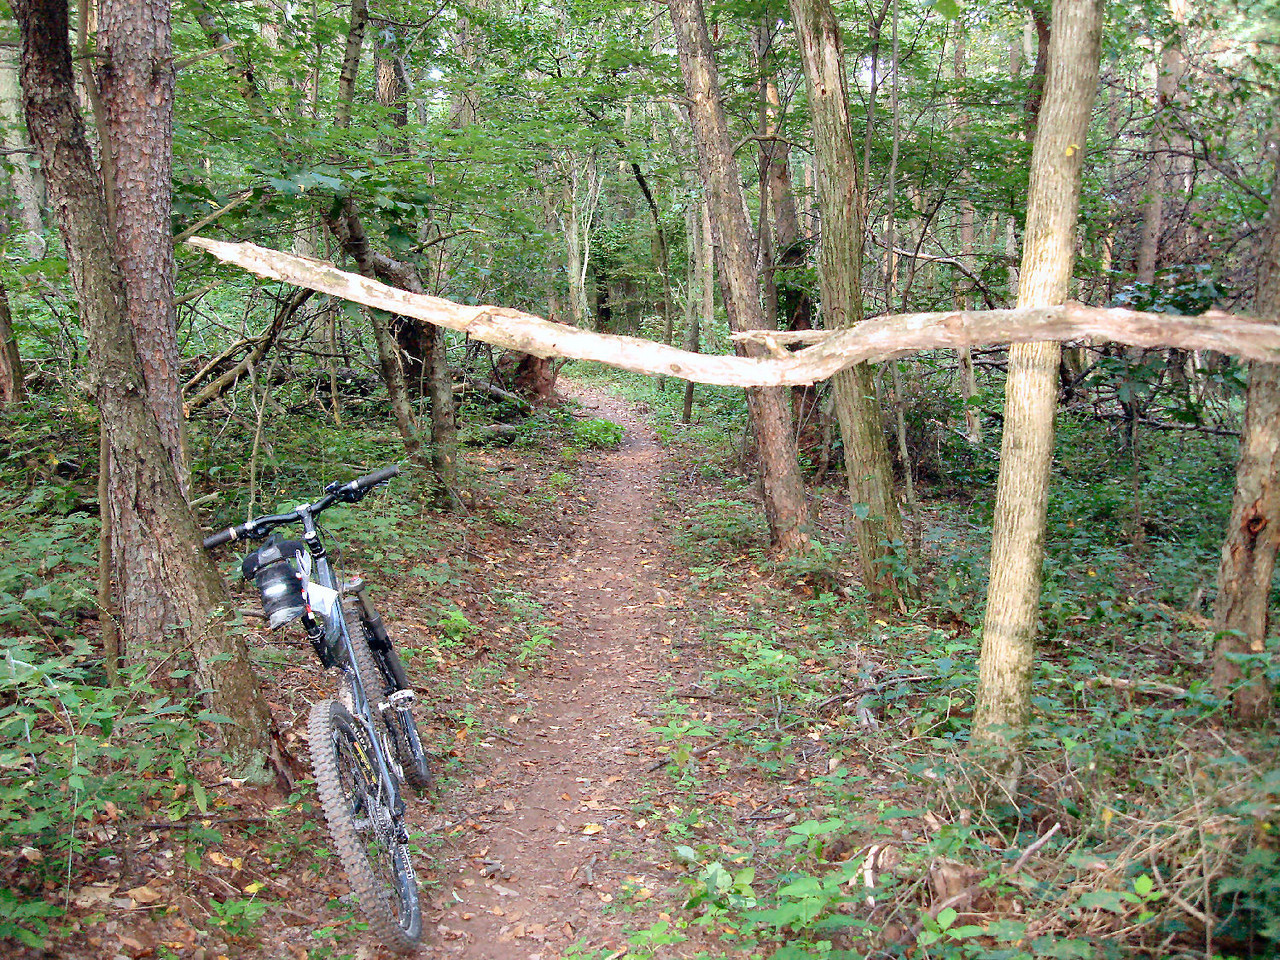 Low Limb on trail - Before